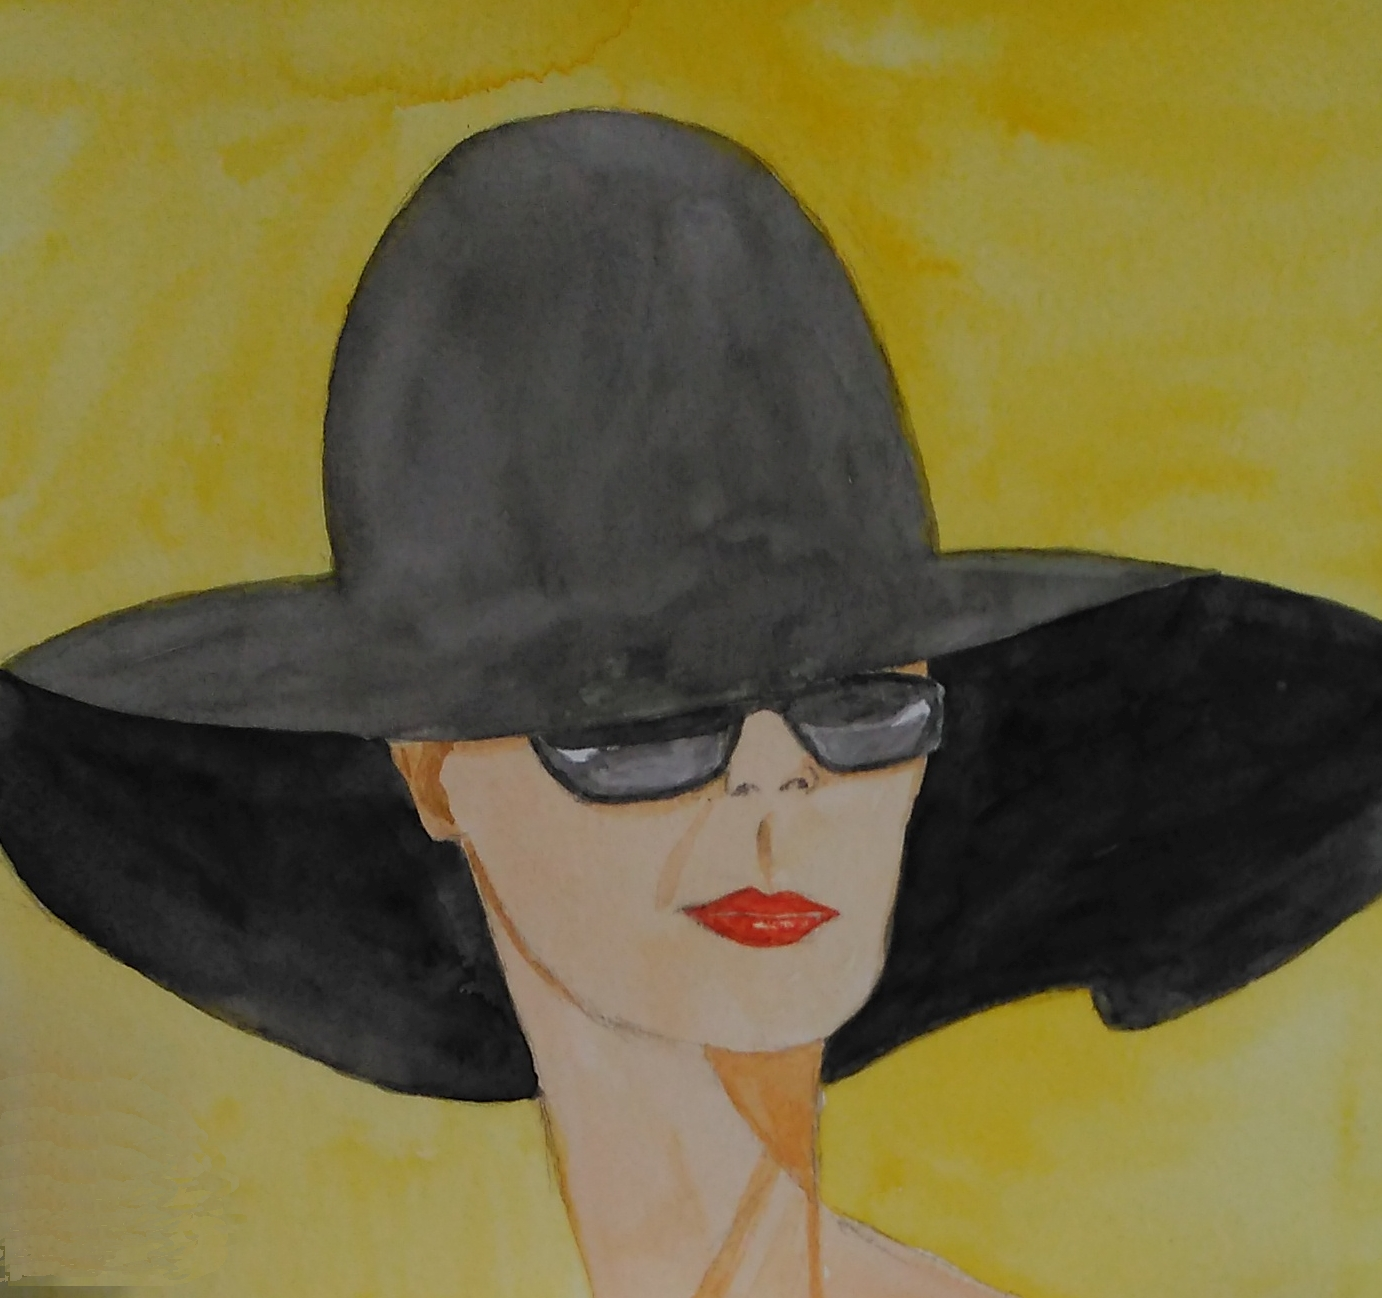 A watercolour of a lady's head with sunglasses and a large black hat.